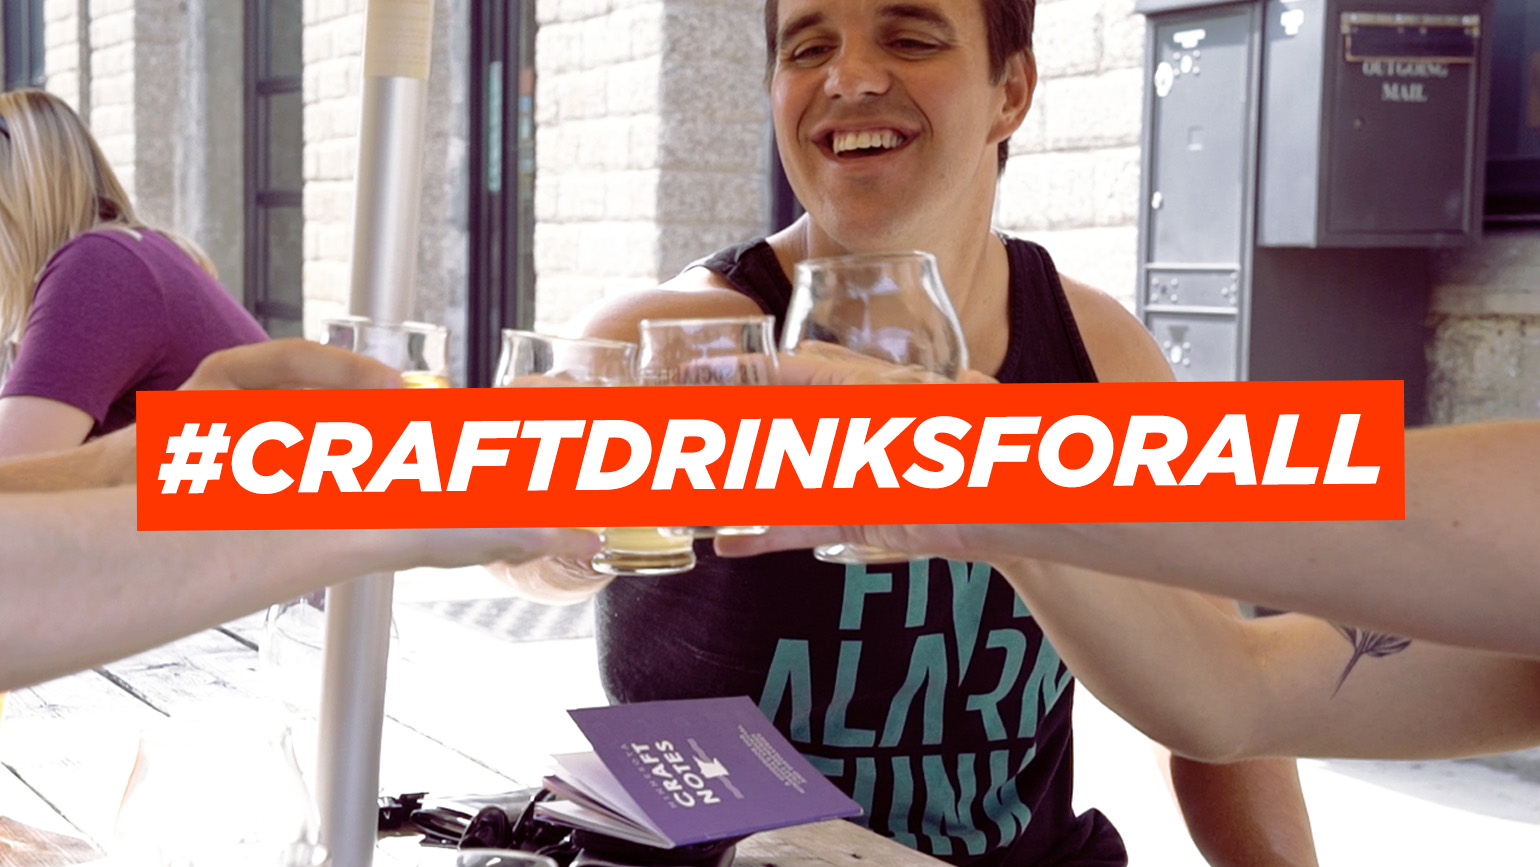 craft beer is for everyone, craft beer passport and mobile app